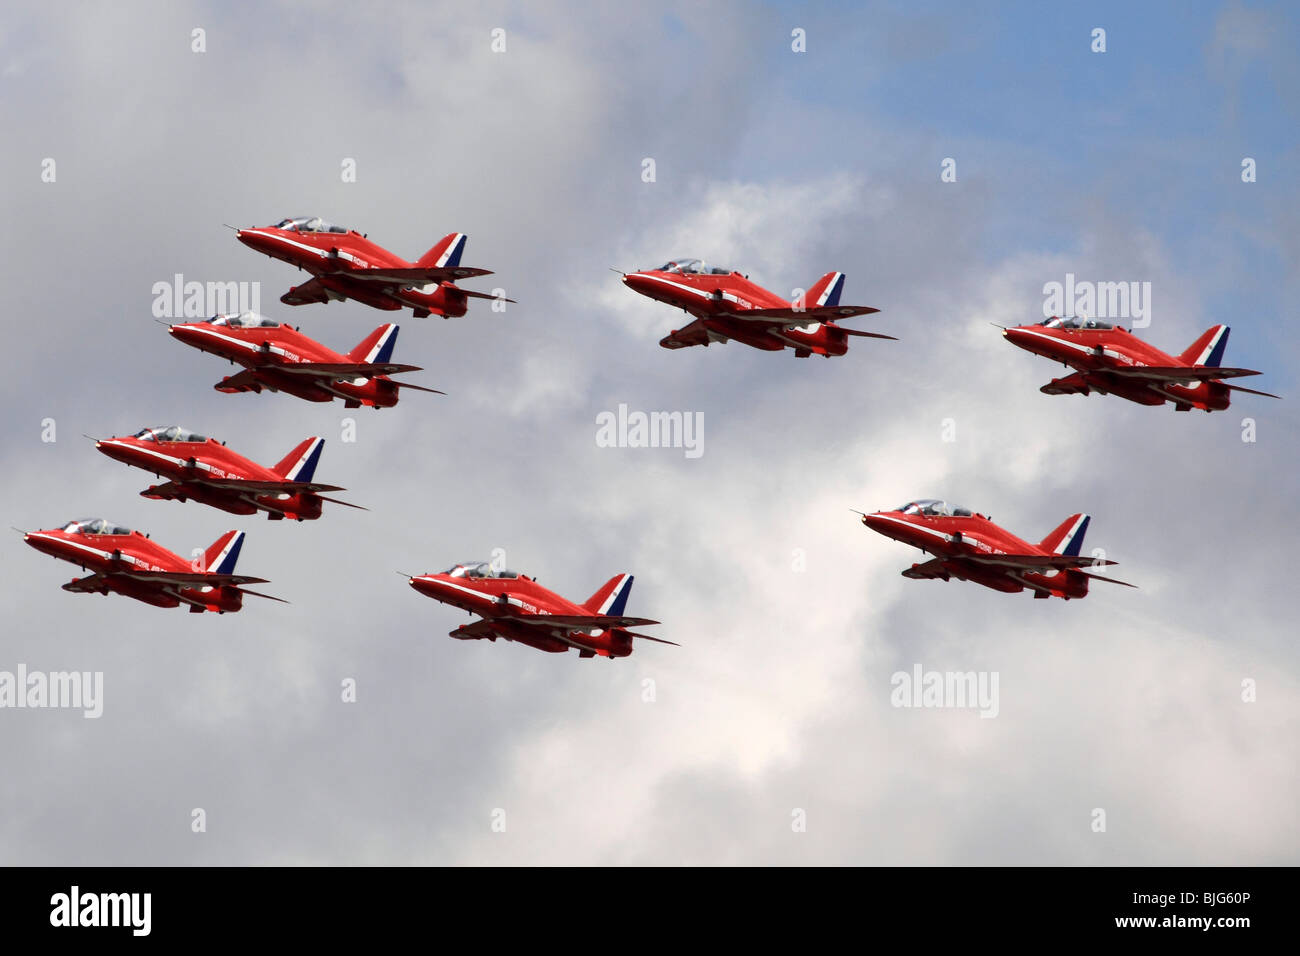 Royal Air Force Aerobatic Team Red Arrows at the Royal International Air Tattoo (RIAT) Air Show July 2009 - Stock Image